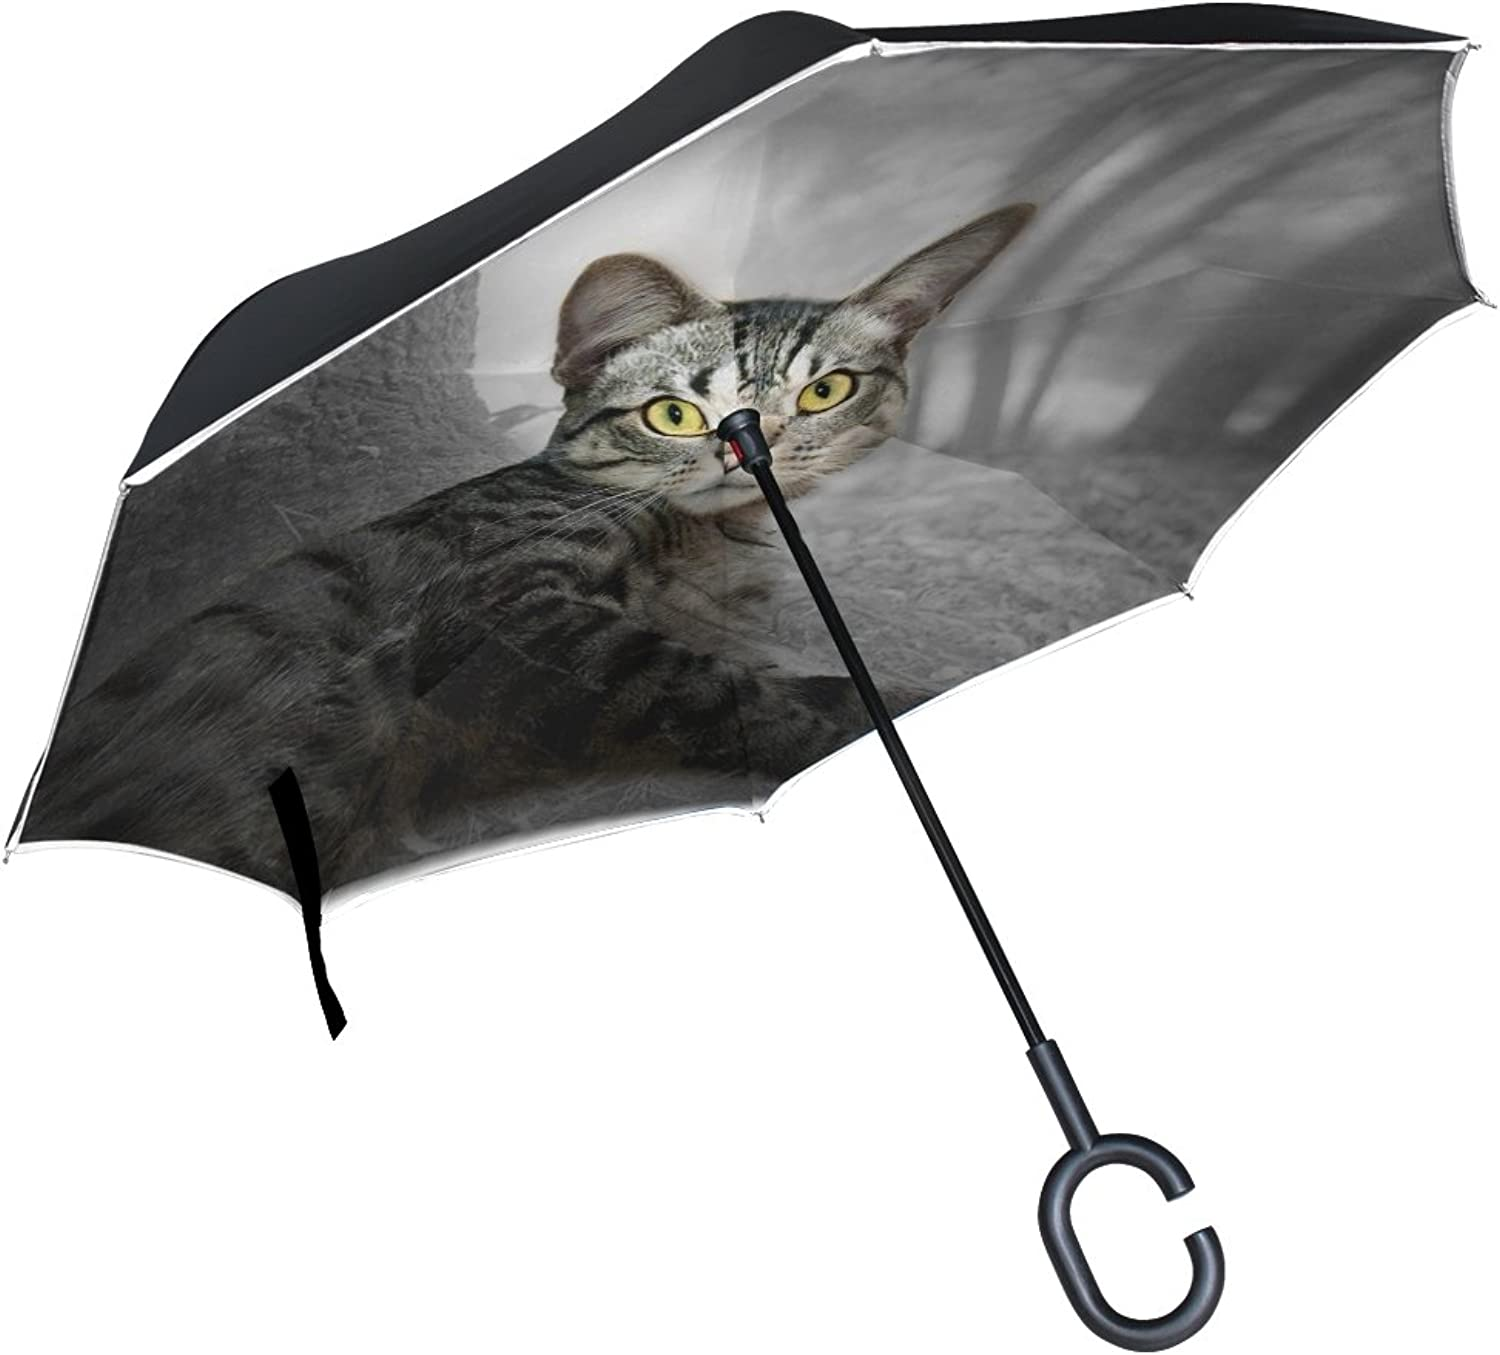 Double Layer Ingreened Cat Forest Nature Tree Fur Watch Animal World Umbrellas Reverse Folding Umbrella Windproof Uv Predection Big Straight Umbrella for Car Rain Outdoor with CShaped Handle